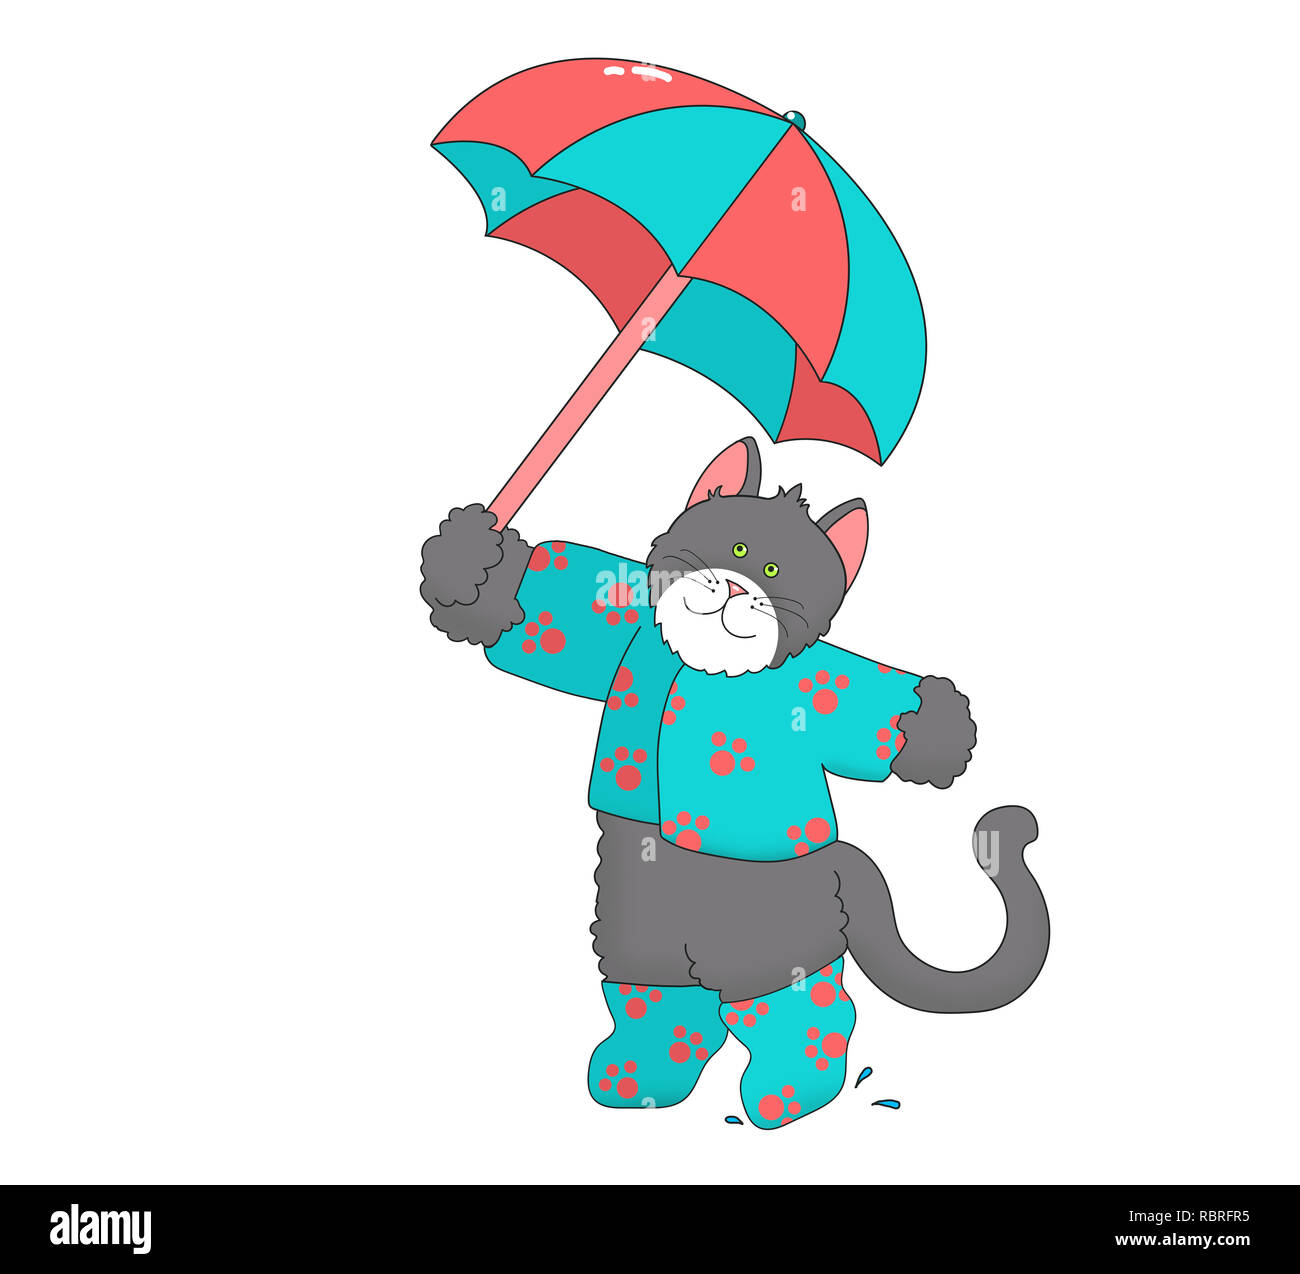 Illustration of a gray cat/kitten wearing teal clothes and boots with orange paw prints, holding an umbrella against a white background - Stock Image